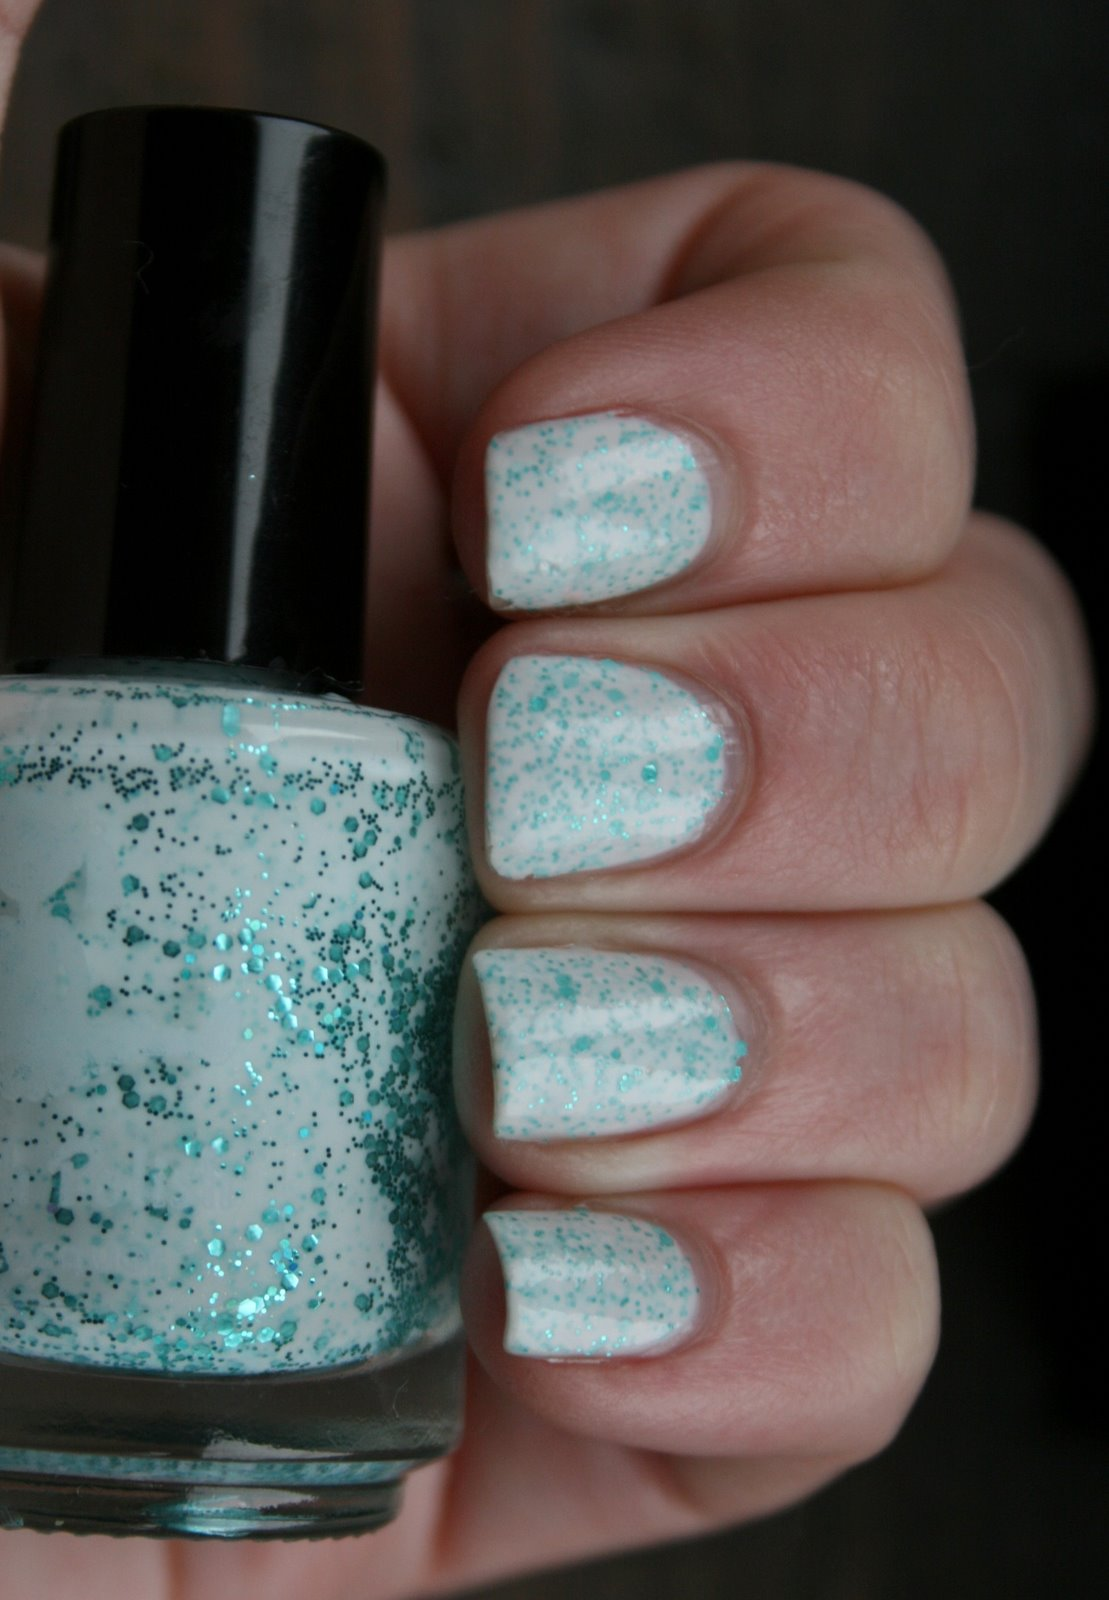 Dollish Polish Expecto Patronum swatch